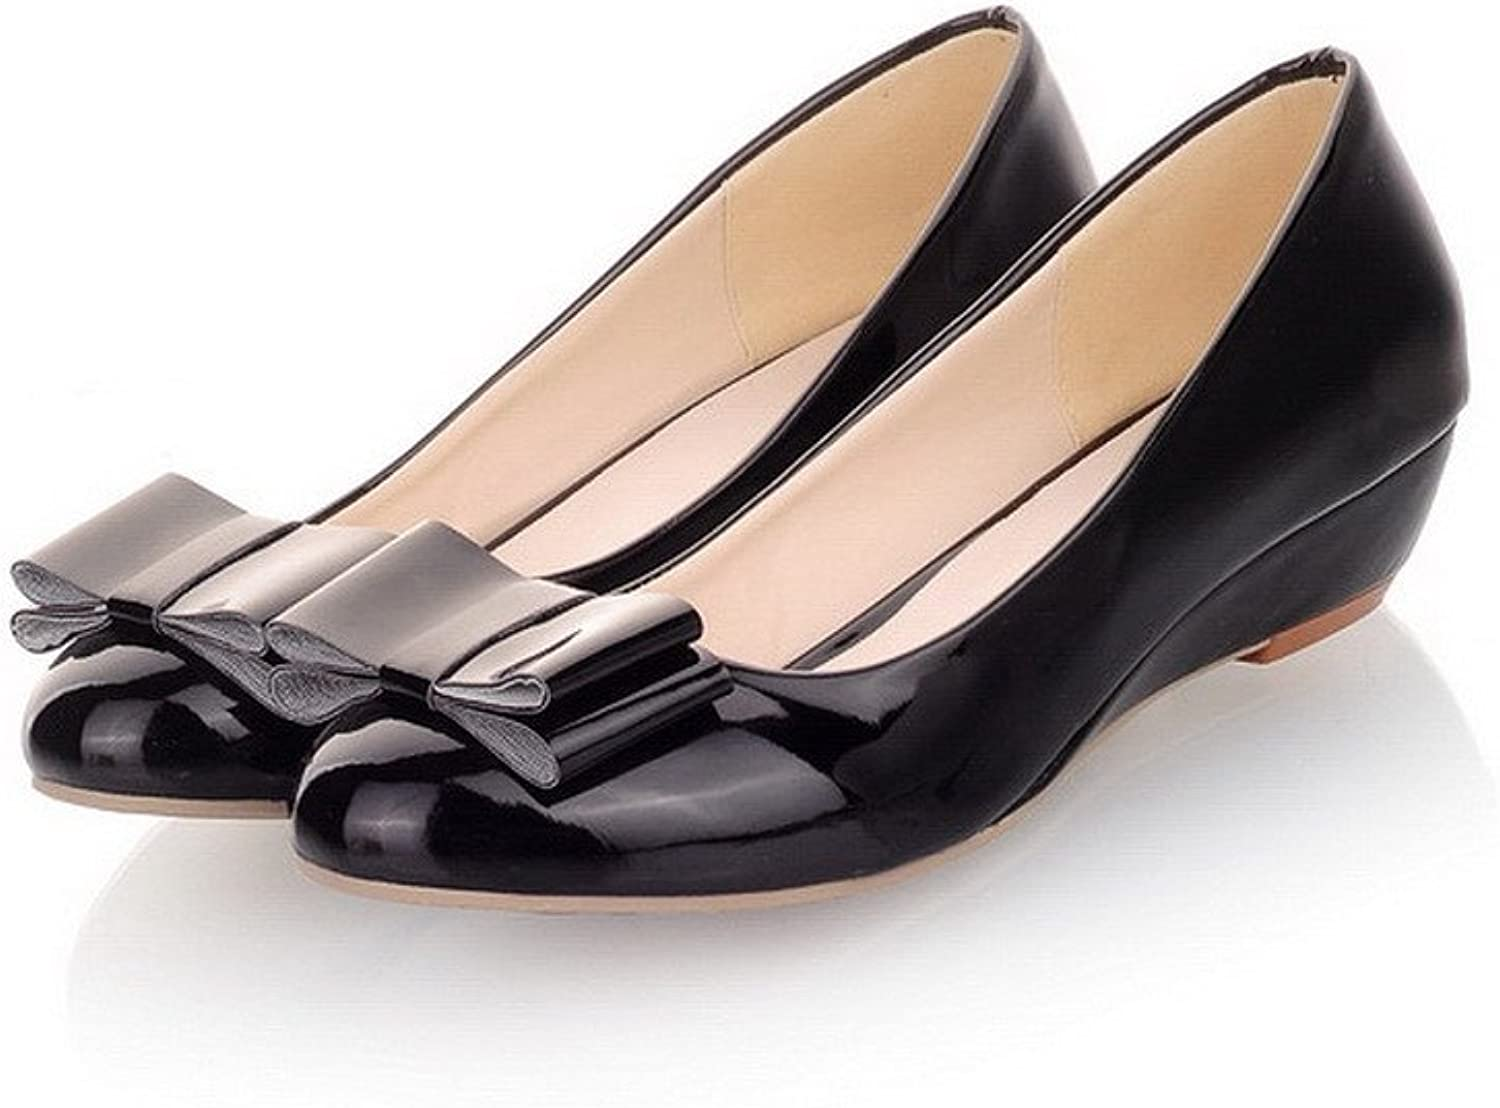 WeiPoot Womens Closed Round Toe Low Heel PU Soft Material Solid Pumps with Bowknot, Black, 7.5 B(M) US